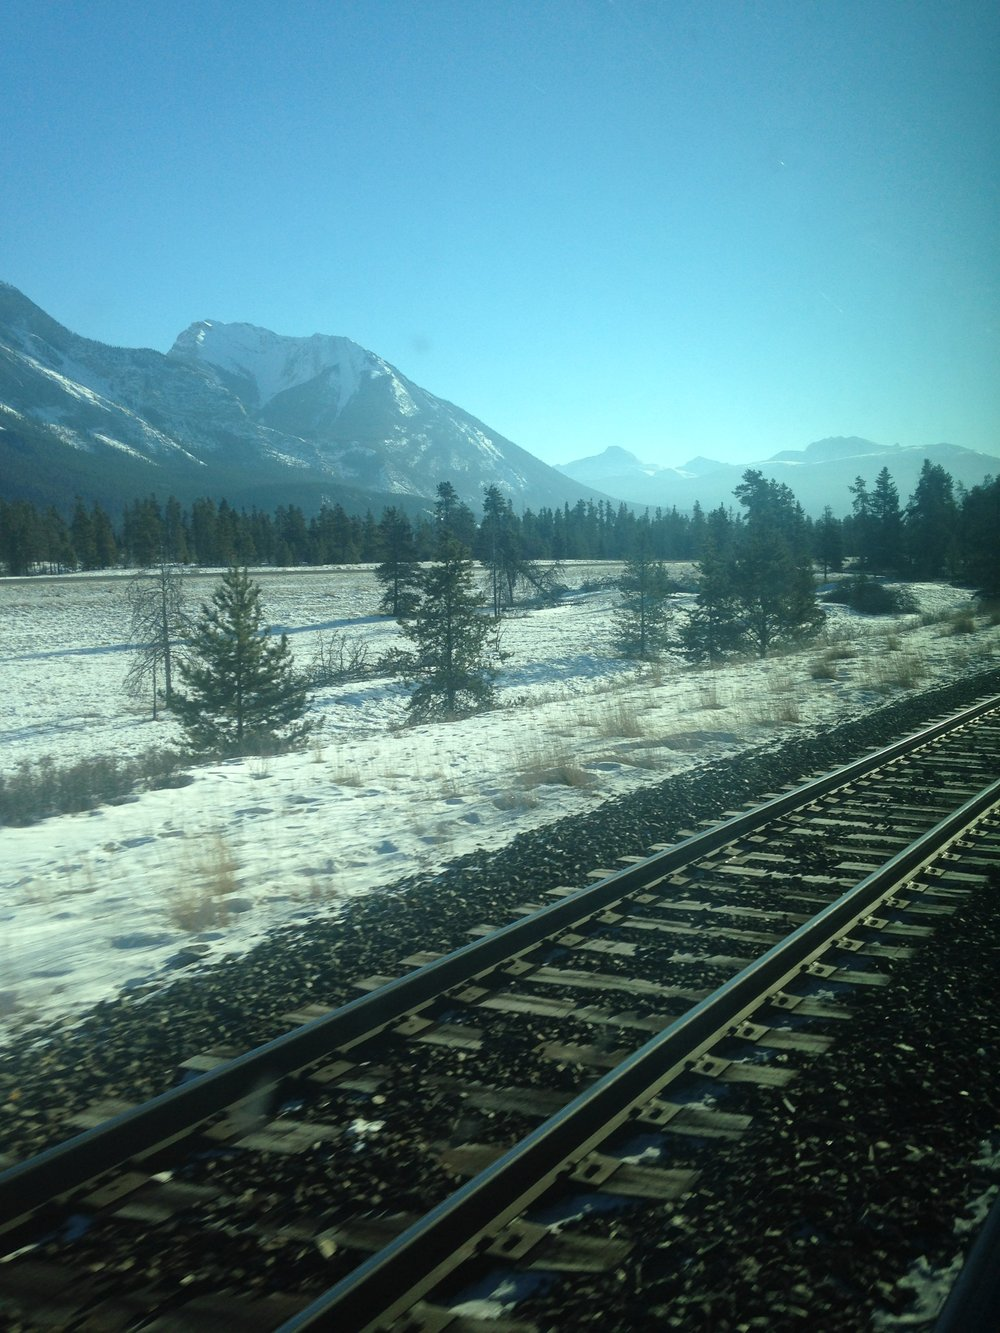 2000 miles across Canada by train, 2016